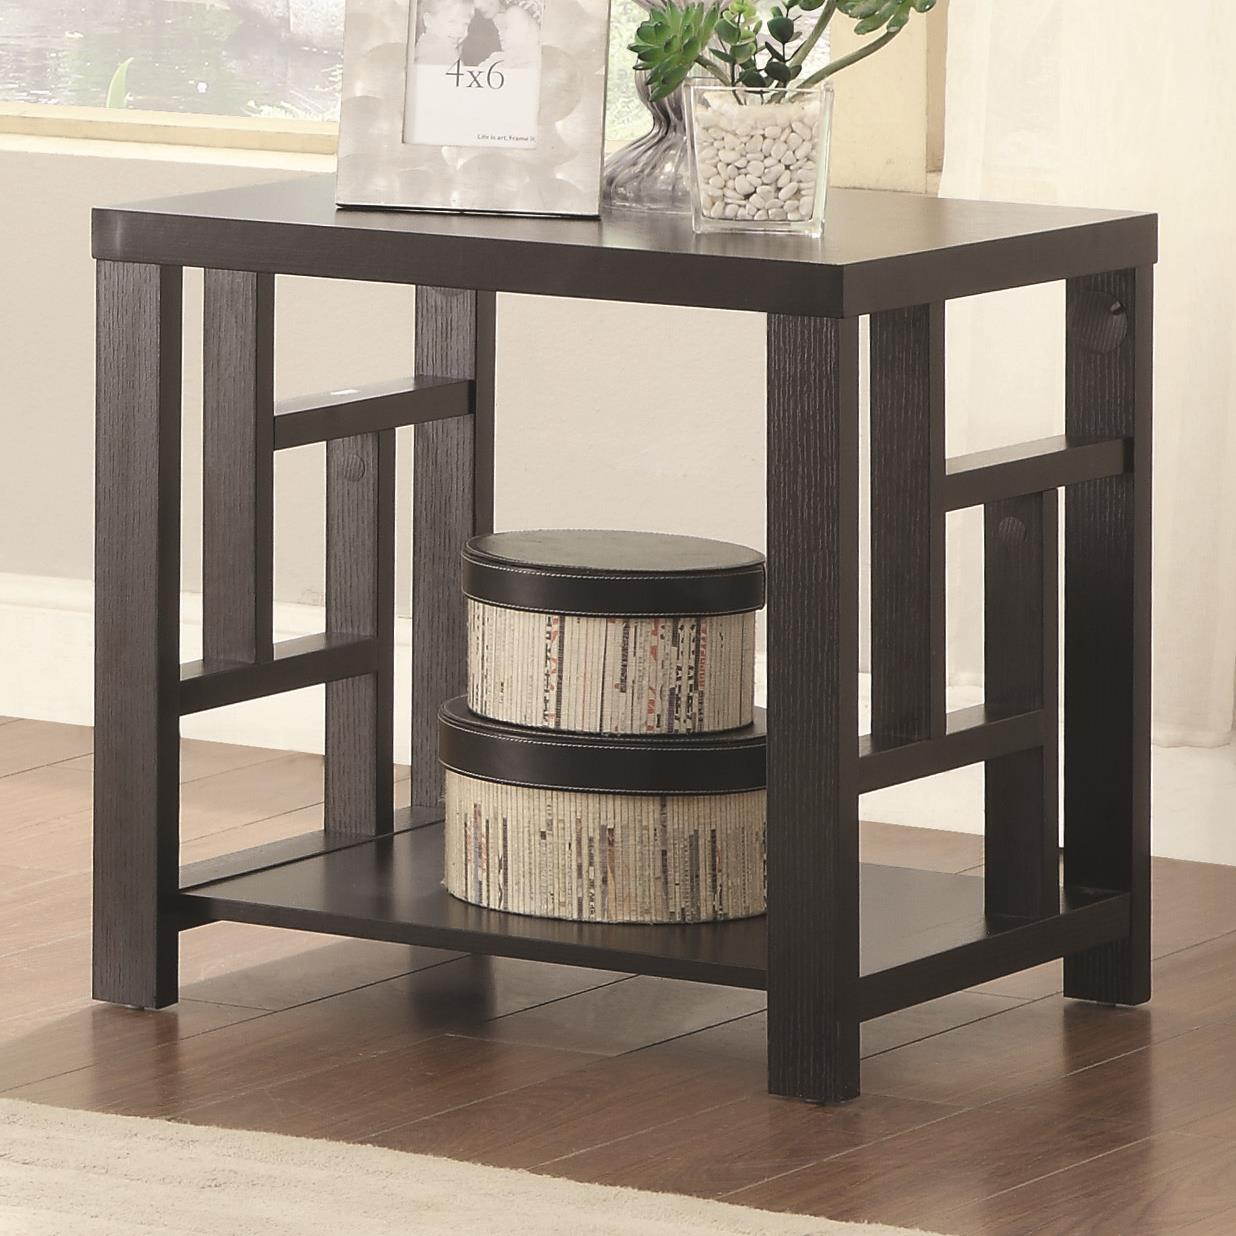 703537 end table with window pane design